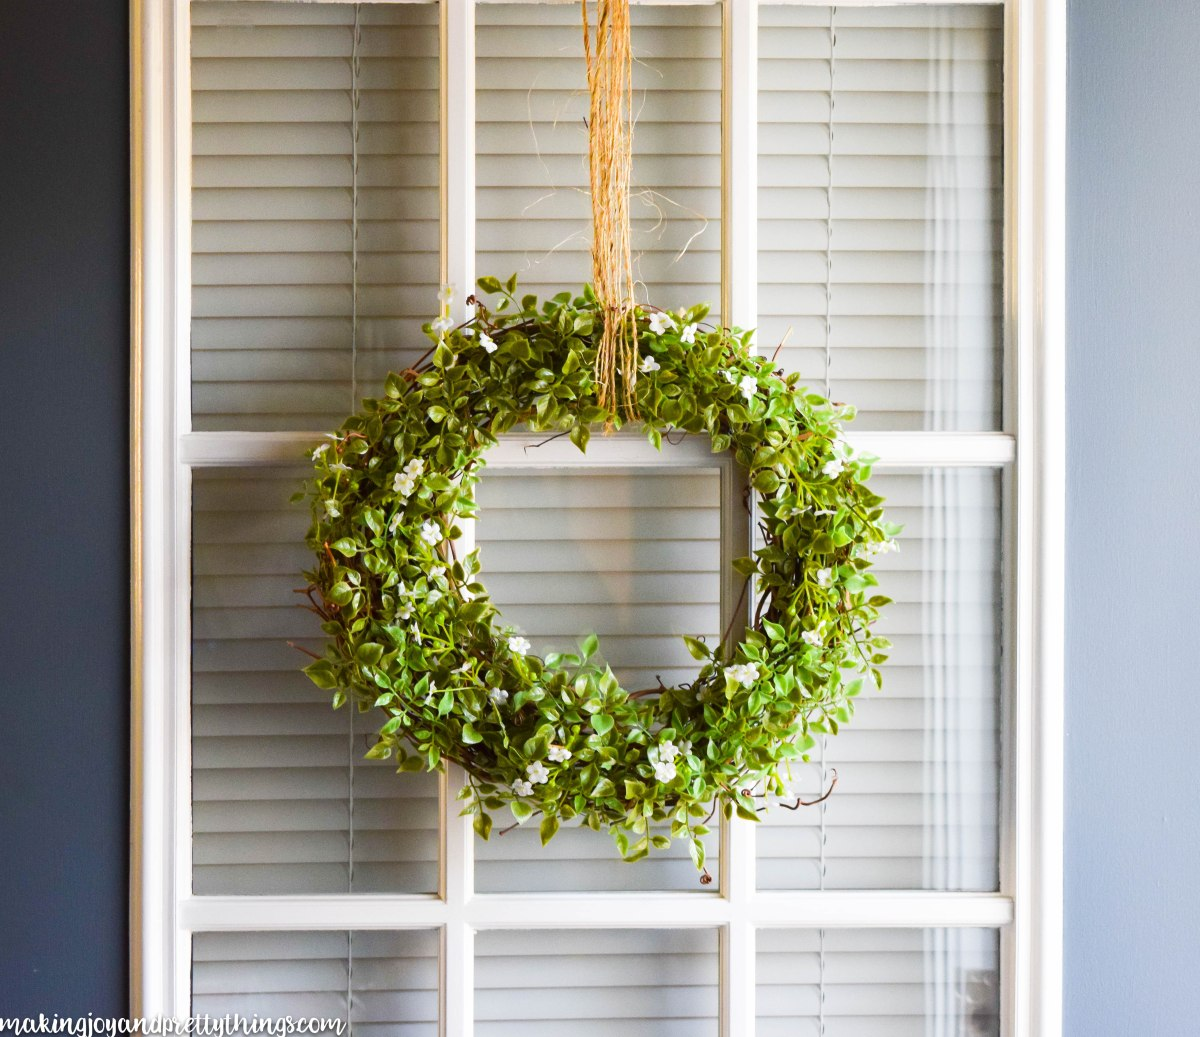 This simple farmhouse wreath is an easy DIY to add fixer upper and farmhouse style to your home. Easy to make and has a beautifully simple finish. Bring the farmhouse style home decor into your home